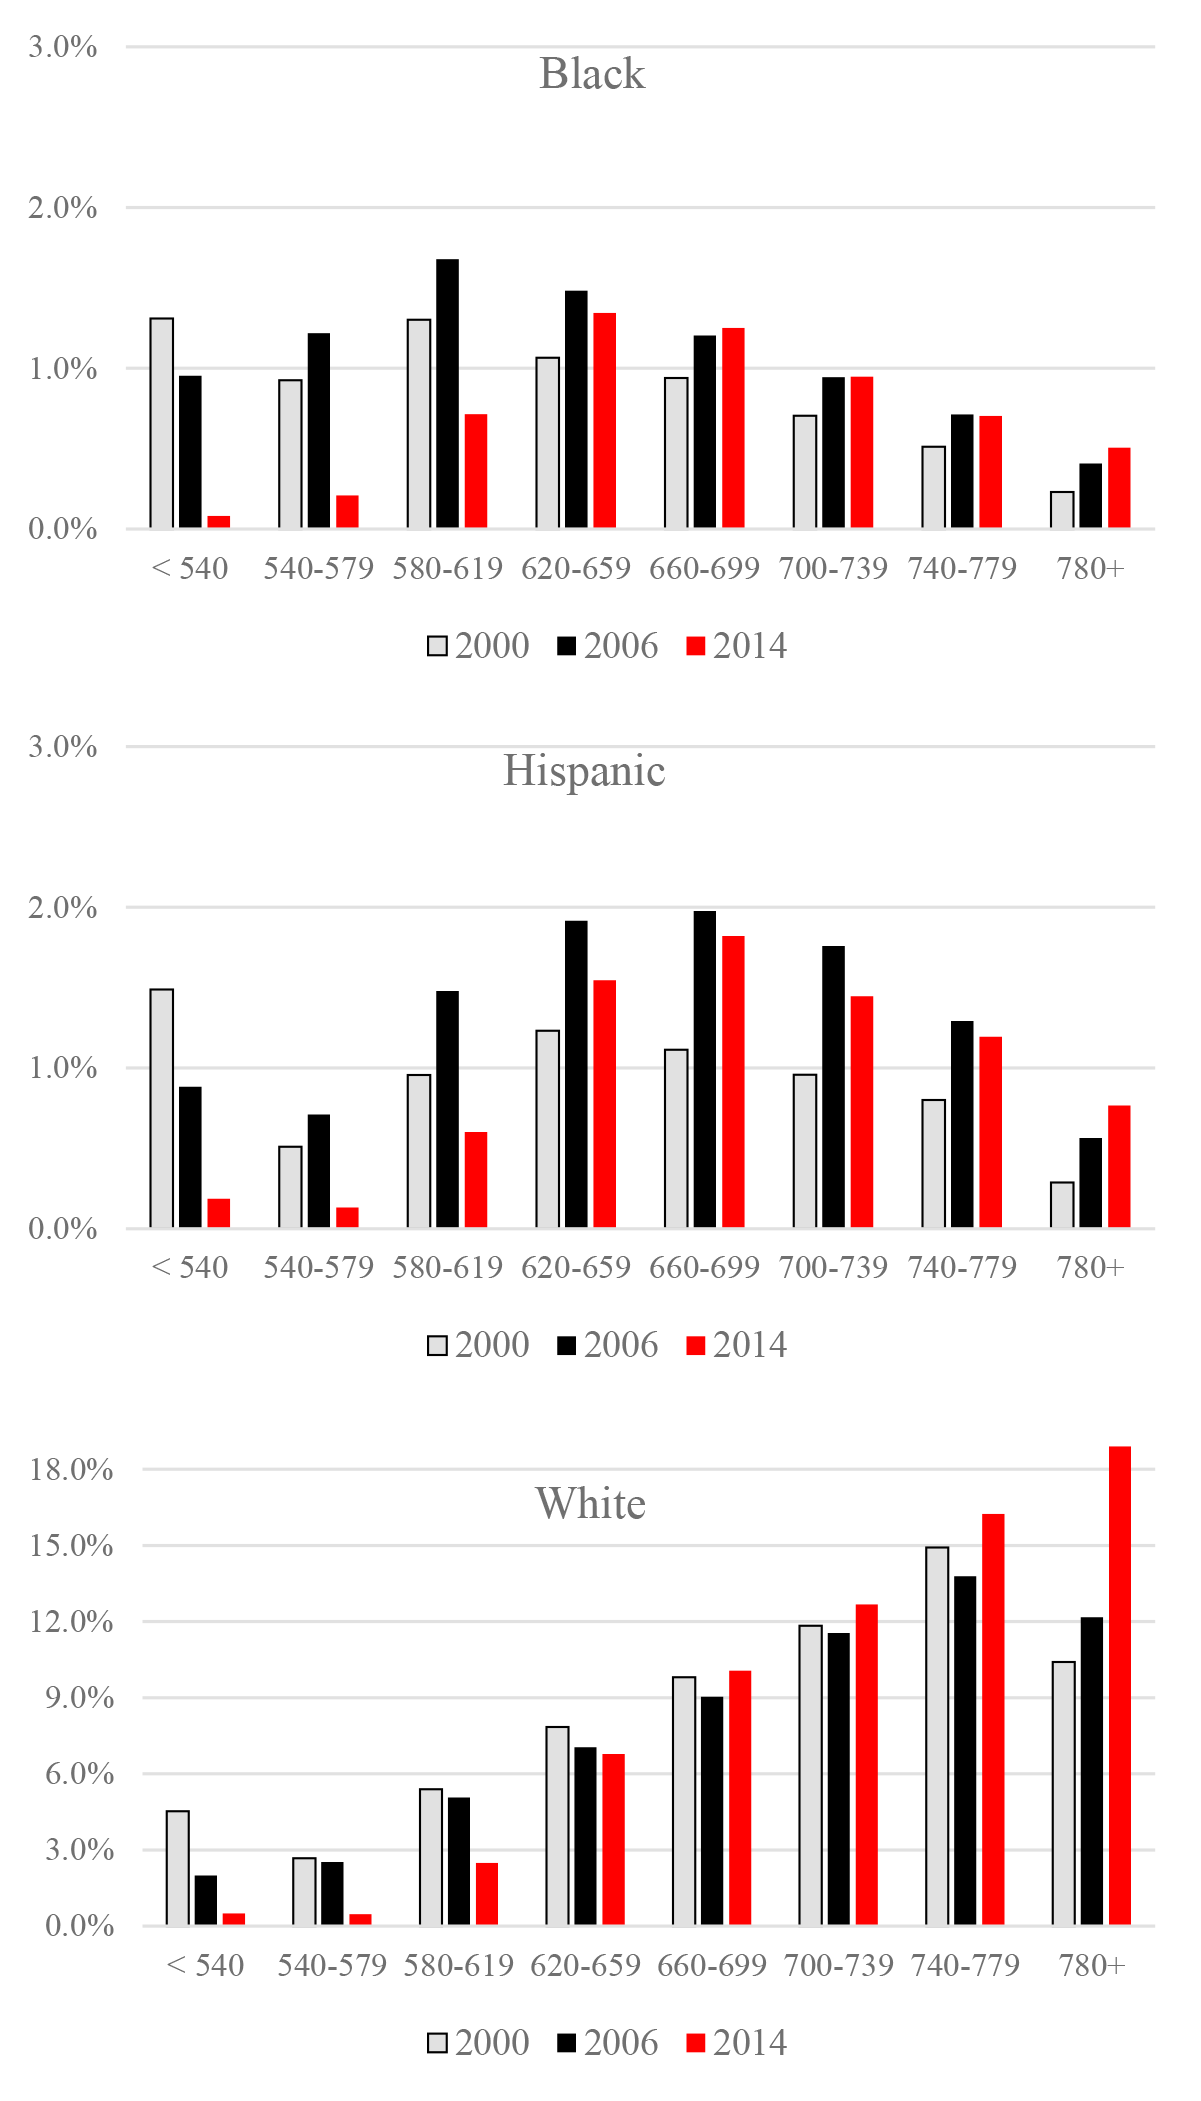 Figure 3: Market shares by race and ethnicity, and by credit score. See accessible link for data description.